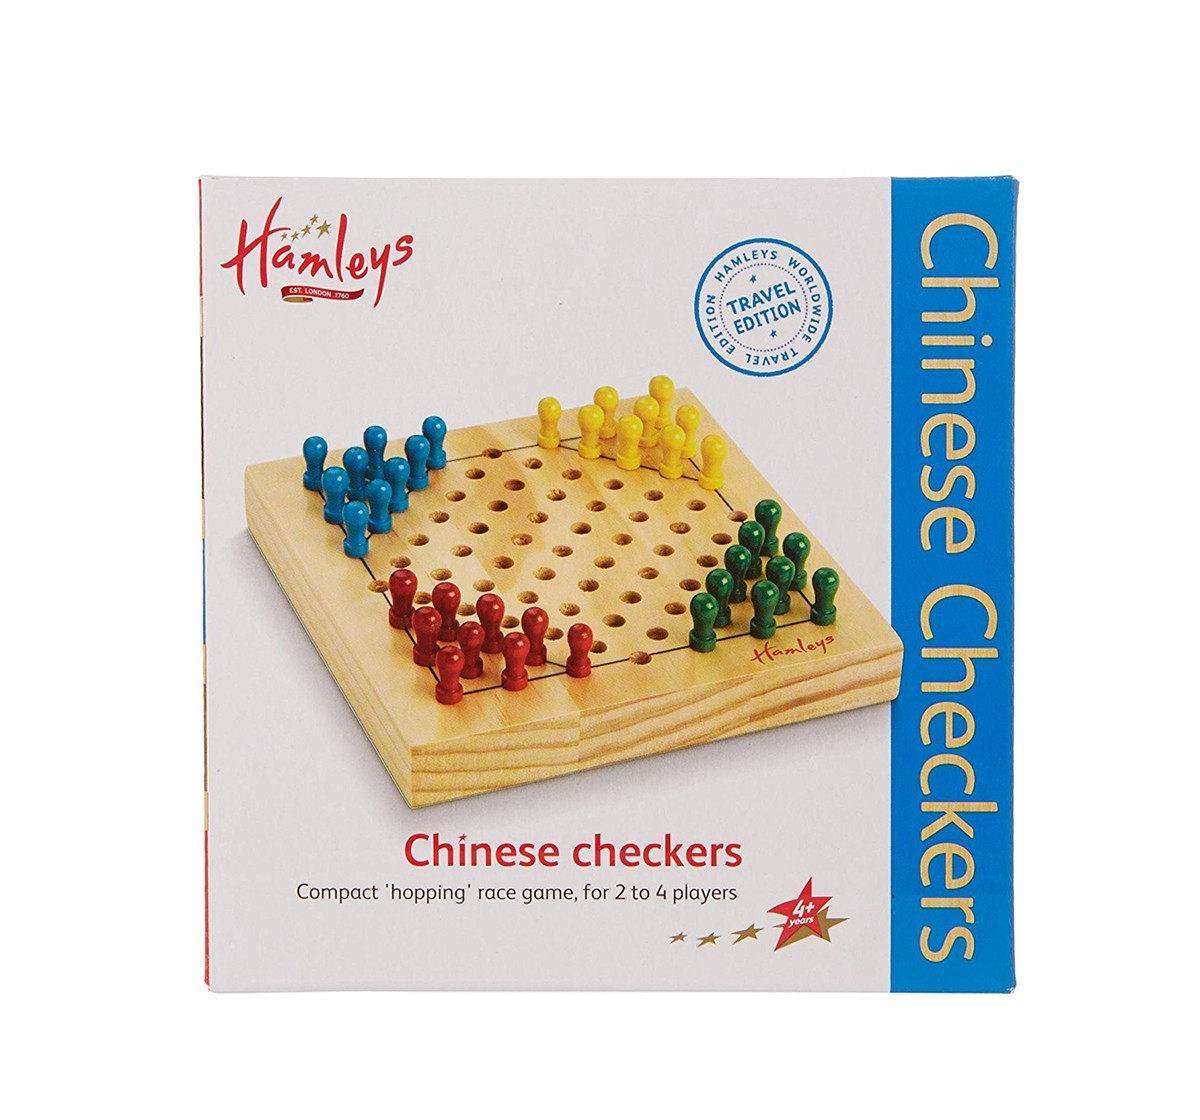 Hamleys Travel Chinese Checkers Game, Multi Color Board Games for Kids age 3Y+